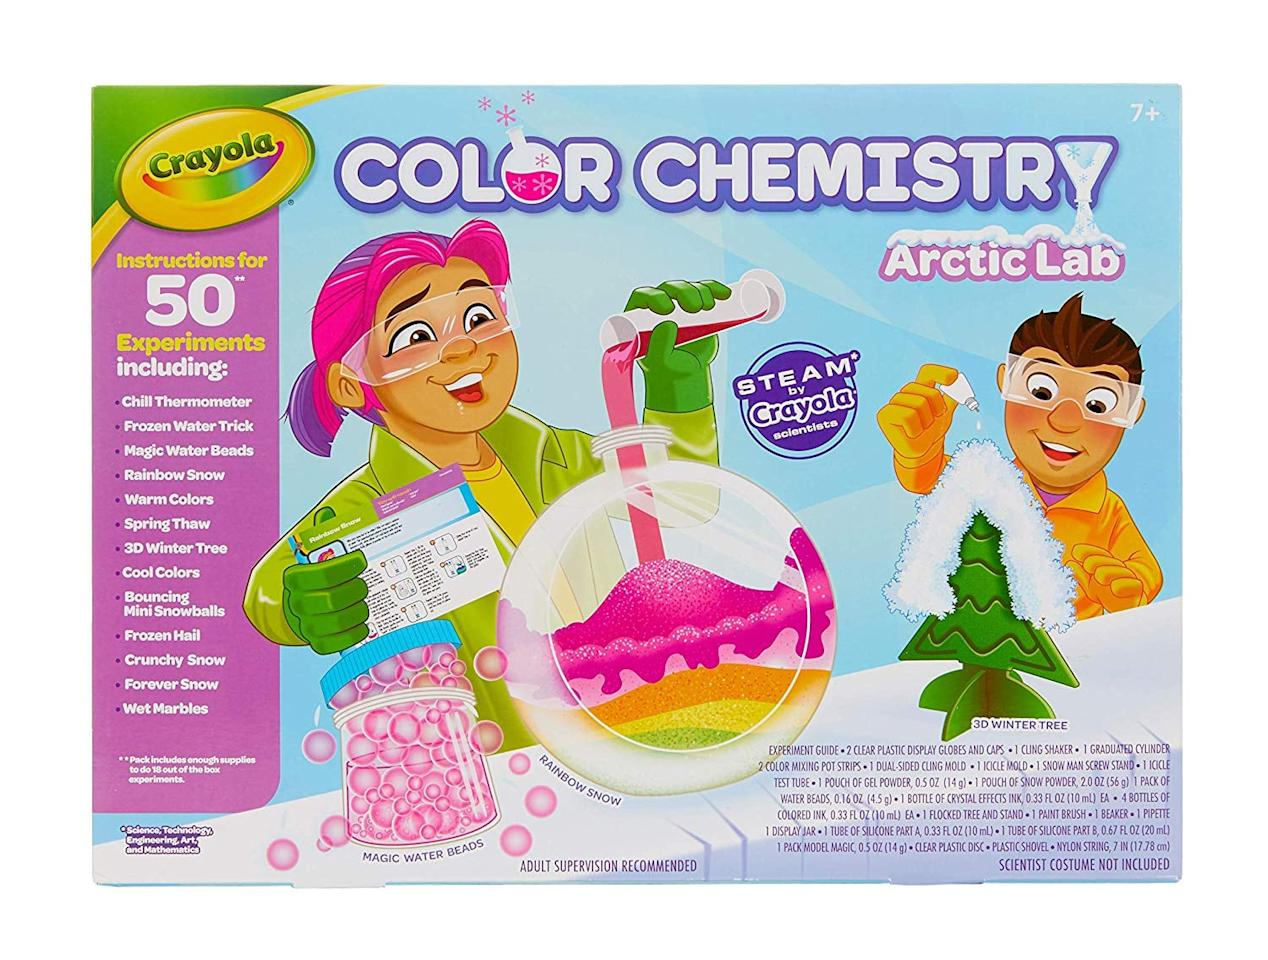 """<p>In the <a href=""""https://www.popsugar.com/buy/Color%20Chemistry%20Arctic%20Lab-454588?p_name=Color%20Chemistry%20Arctic%20Lab&retailer=amazon.com&price=25&evar1=moms%3Aus&evar9=45804853&evar98=https%3A%2F%2Fwww.popsugar.com%2Ffamily%2Fphoto-gallery%2F45804853%2Fimage%2F45805265%2FColor-Chemistry-Arctic-Lab&list1=toys%2Ctoy%20fair%2Ckids%20toys%2Cbest%20of%202019&prop13=api&pdata=1"""" rel=""""nofollow"""" data-shoppable-link=""""1"""" target=""""_blank"""" class=""""ga-track"""" data-ga-category=""""Related"""" data-ga-label=""""https://www.amazon.com/Crayola-Artic-Chemistry-Activities-Educational/dp/B07MFW6Y1R"""" data-ga-action=""""In-Line Links"""">Color Chemistry Arctic Lab</a> ($25), kids can do 50 Winter-themed experiments.</p>"""